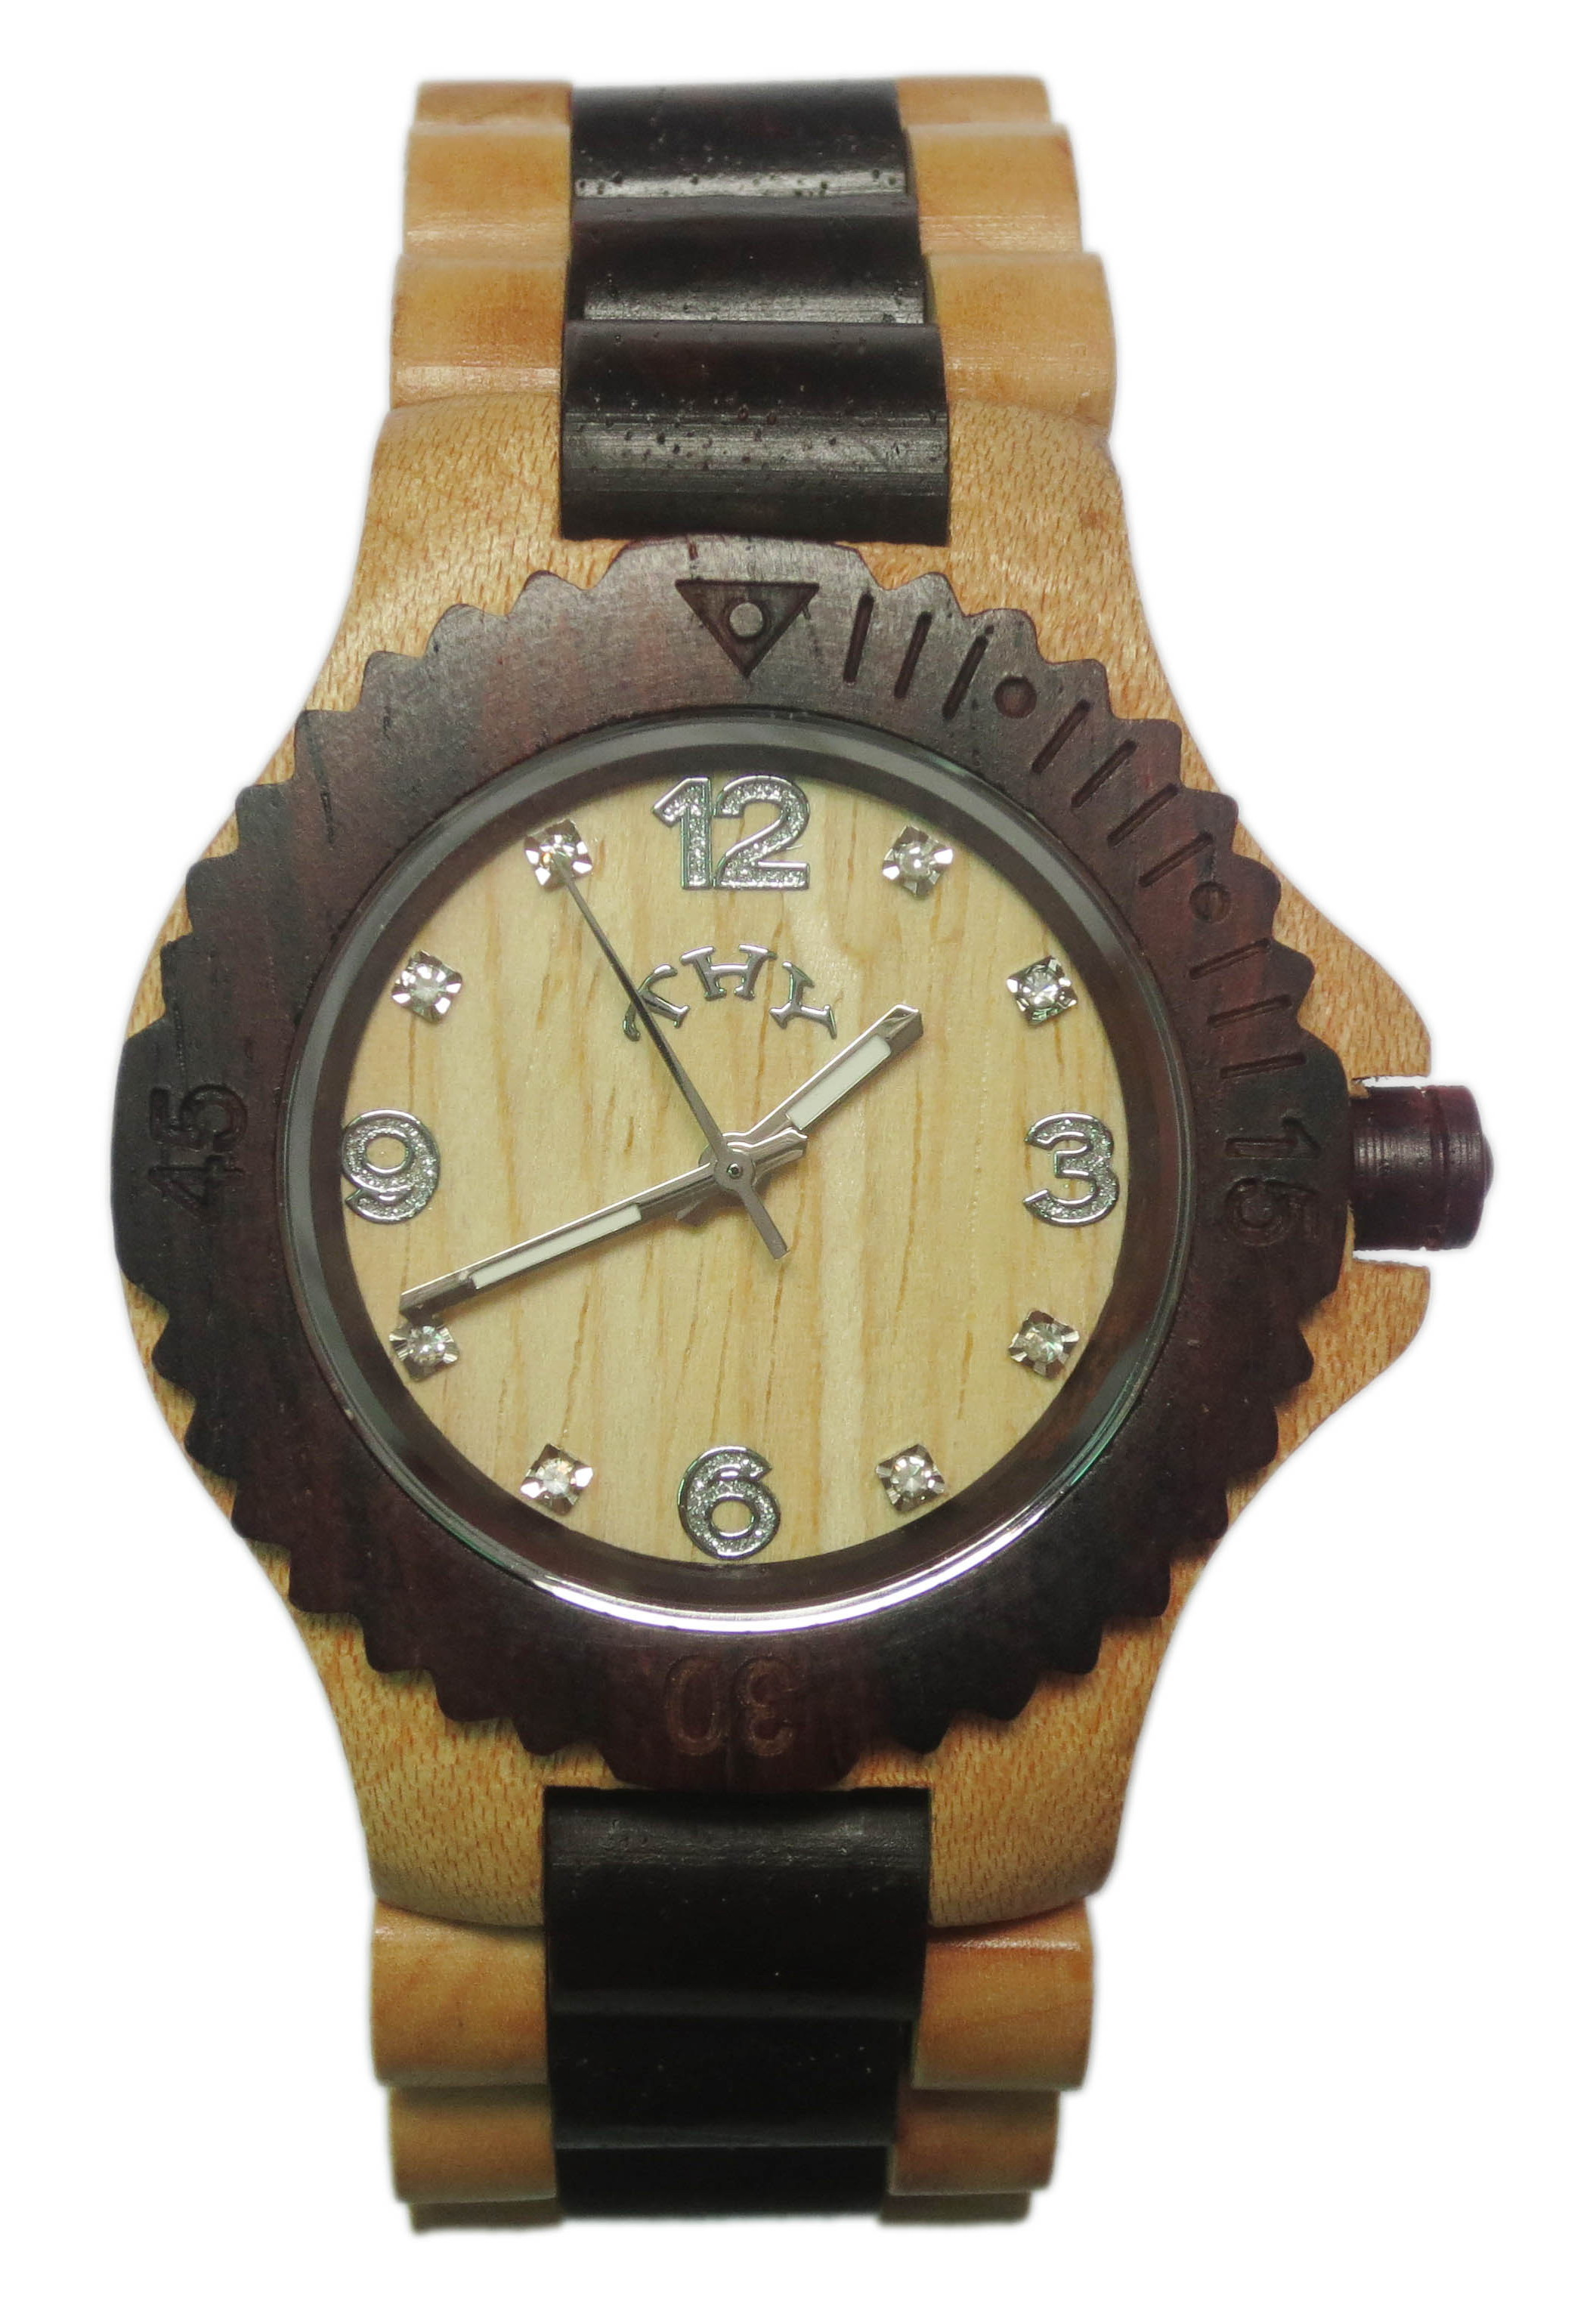 Mens Yellow and Black 2-tone Round White Dial Wooden Watches with 40 Mm Size W00017